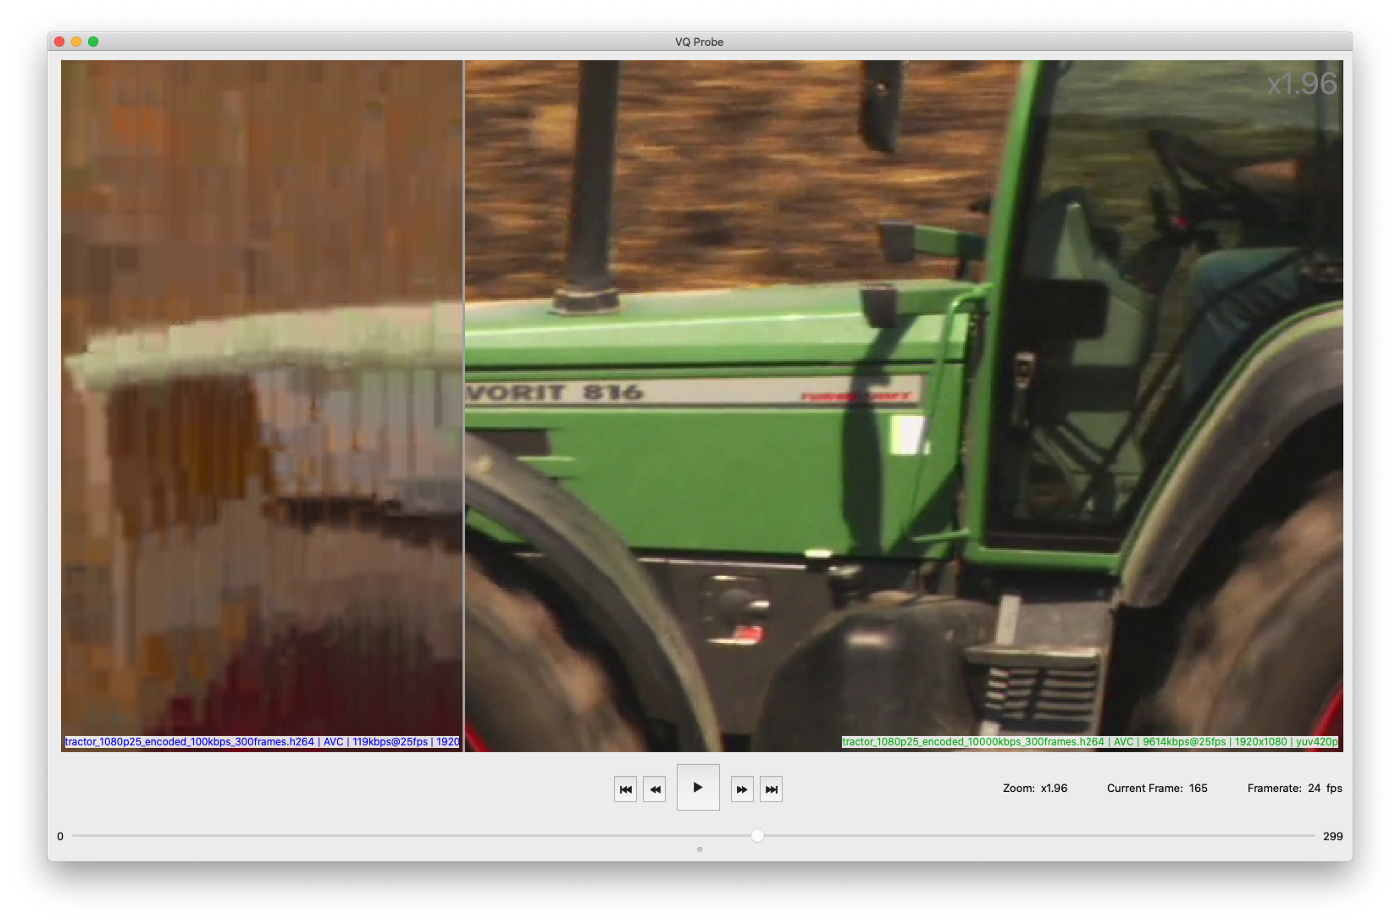 Green tractor cabin encoded with very bad and normal qualities